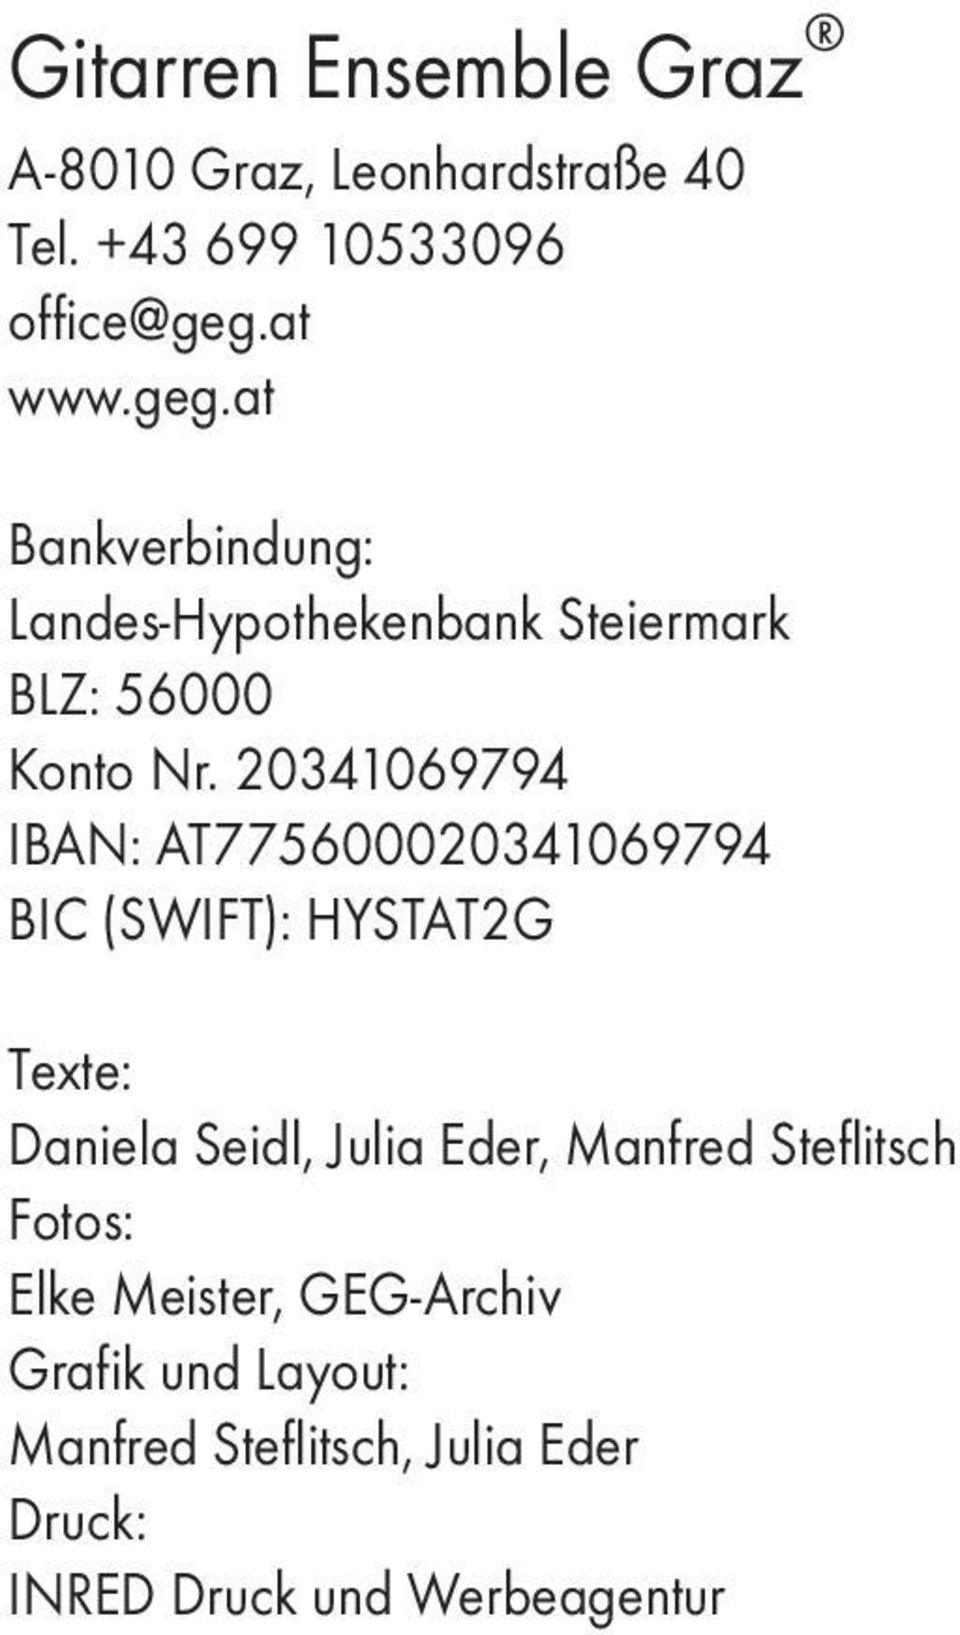 20341069794 IBAN: AT775600020341069794 BIC (SWIFT): HYSTAT2G Texte: Daniela Seidl, Julia Eder,